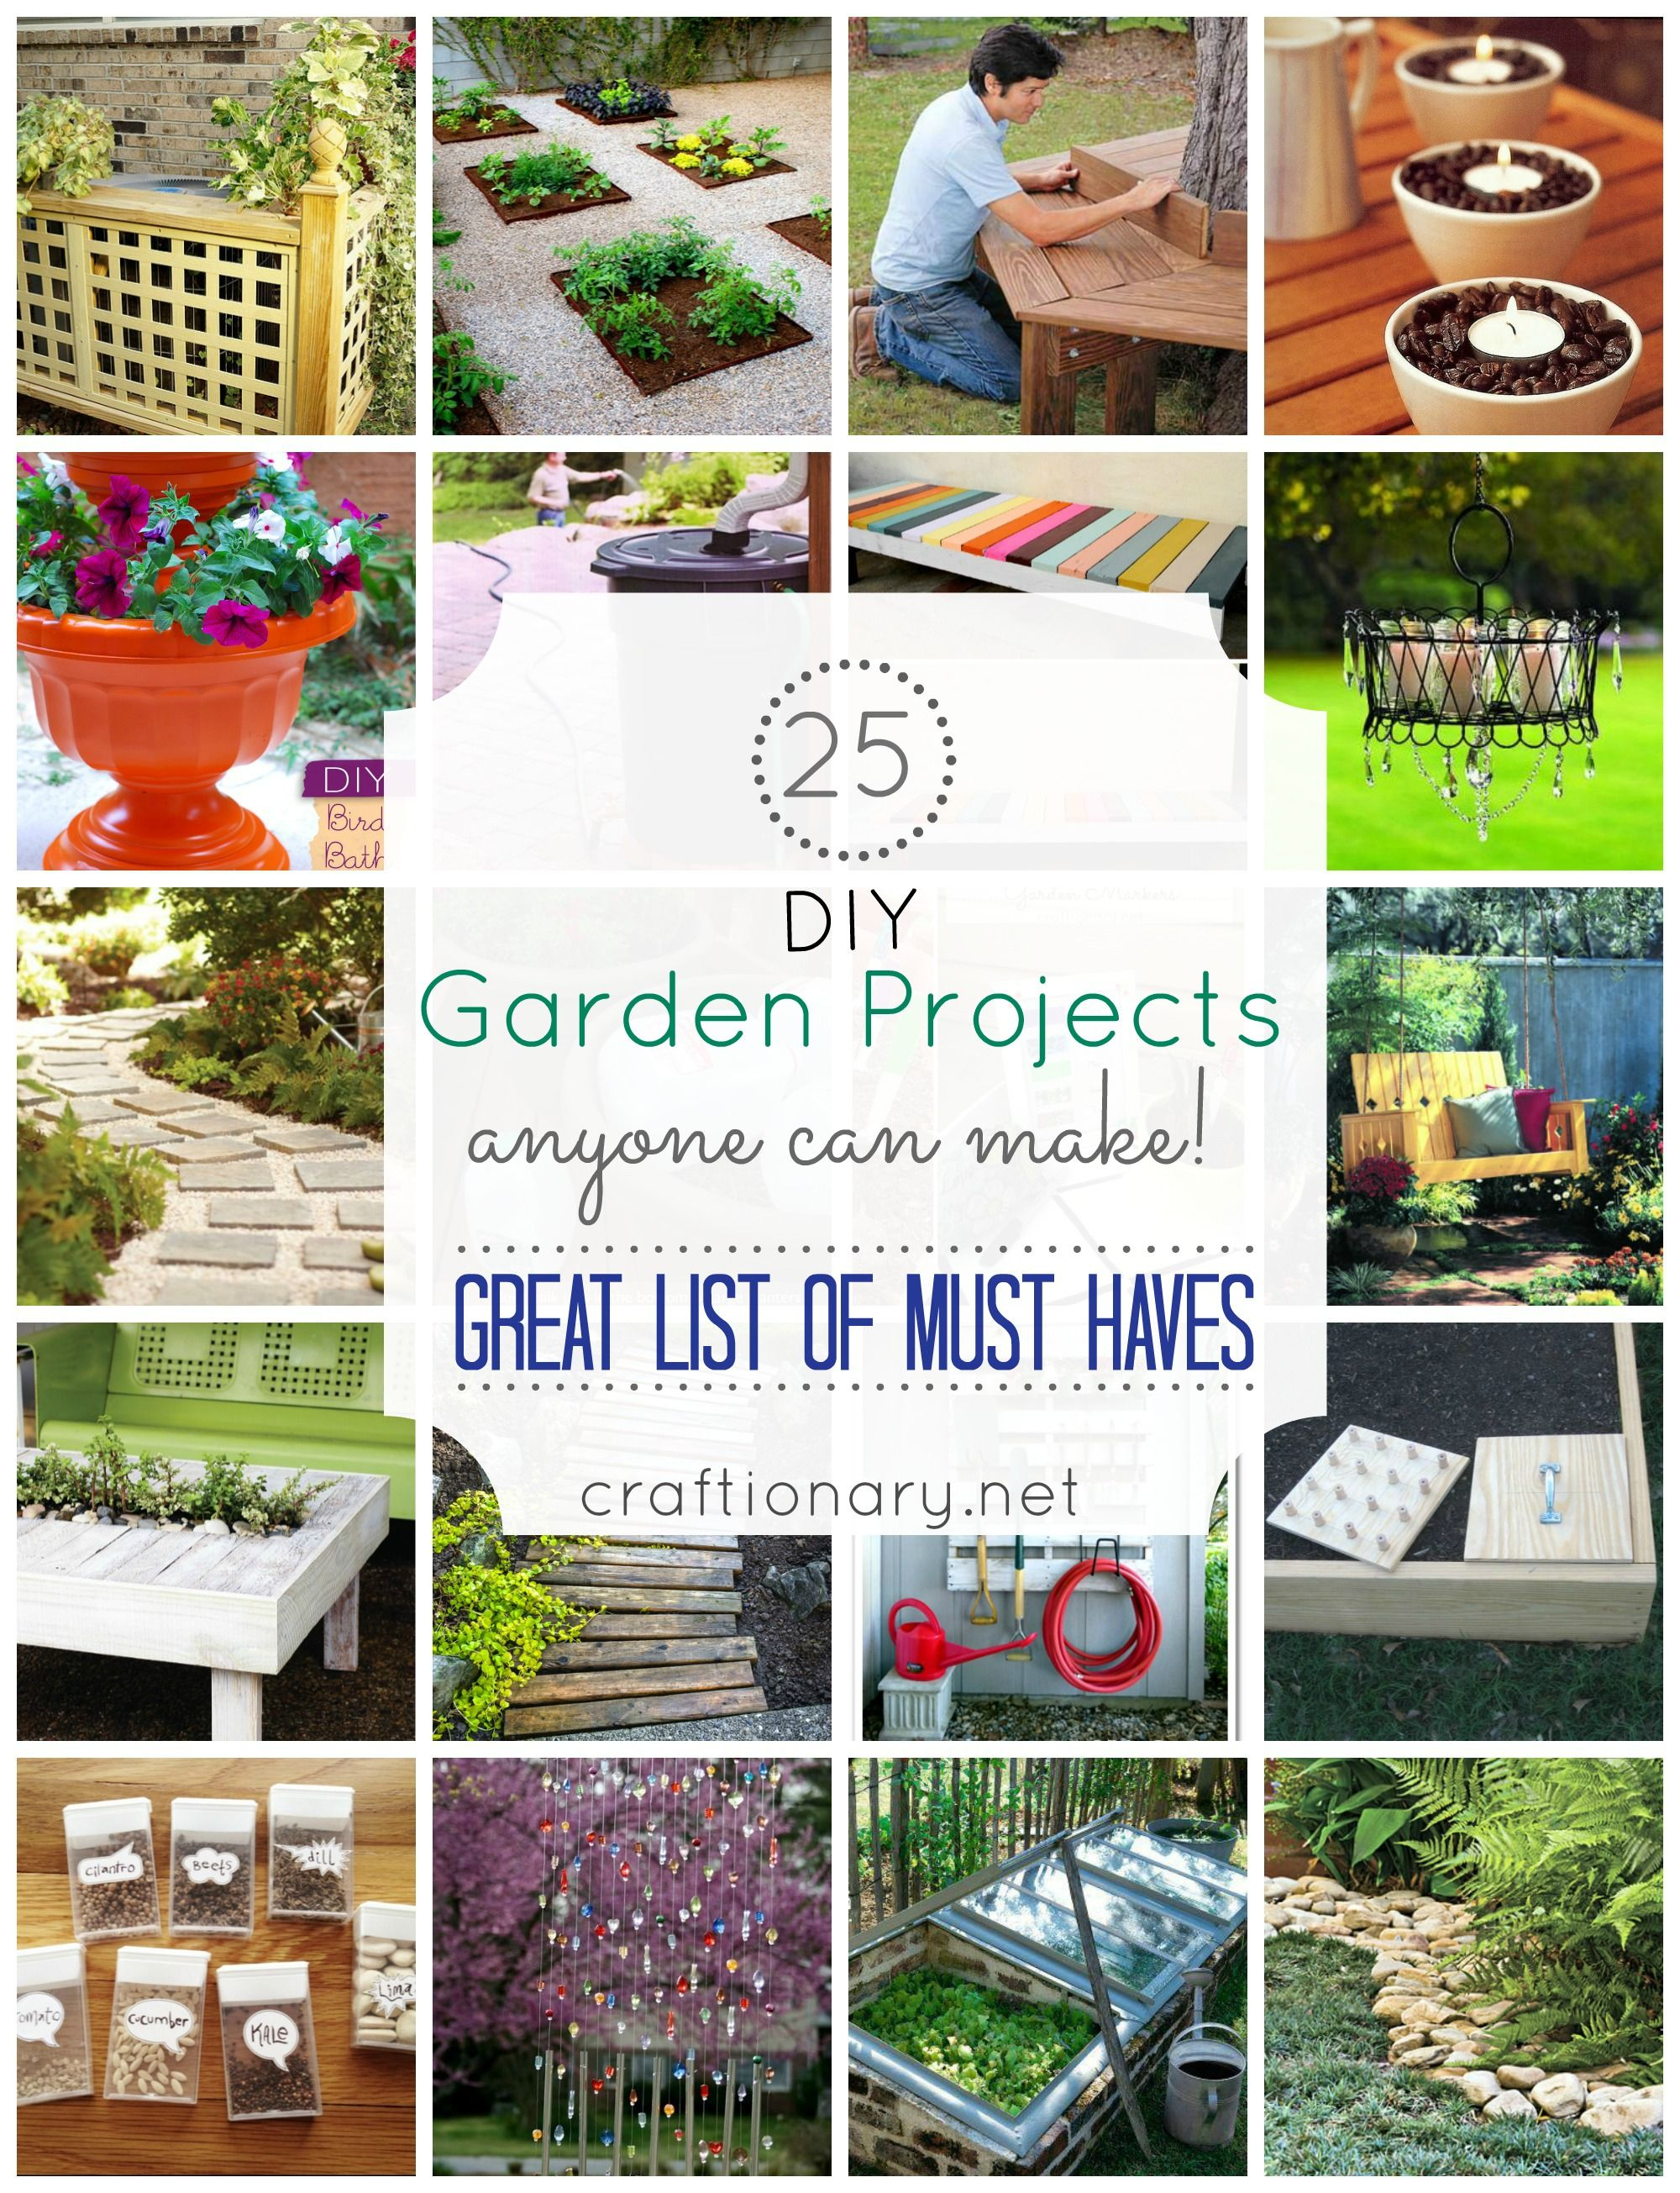 DIY garden projects DIY garden craftionary projects